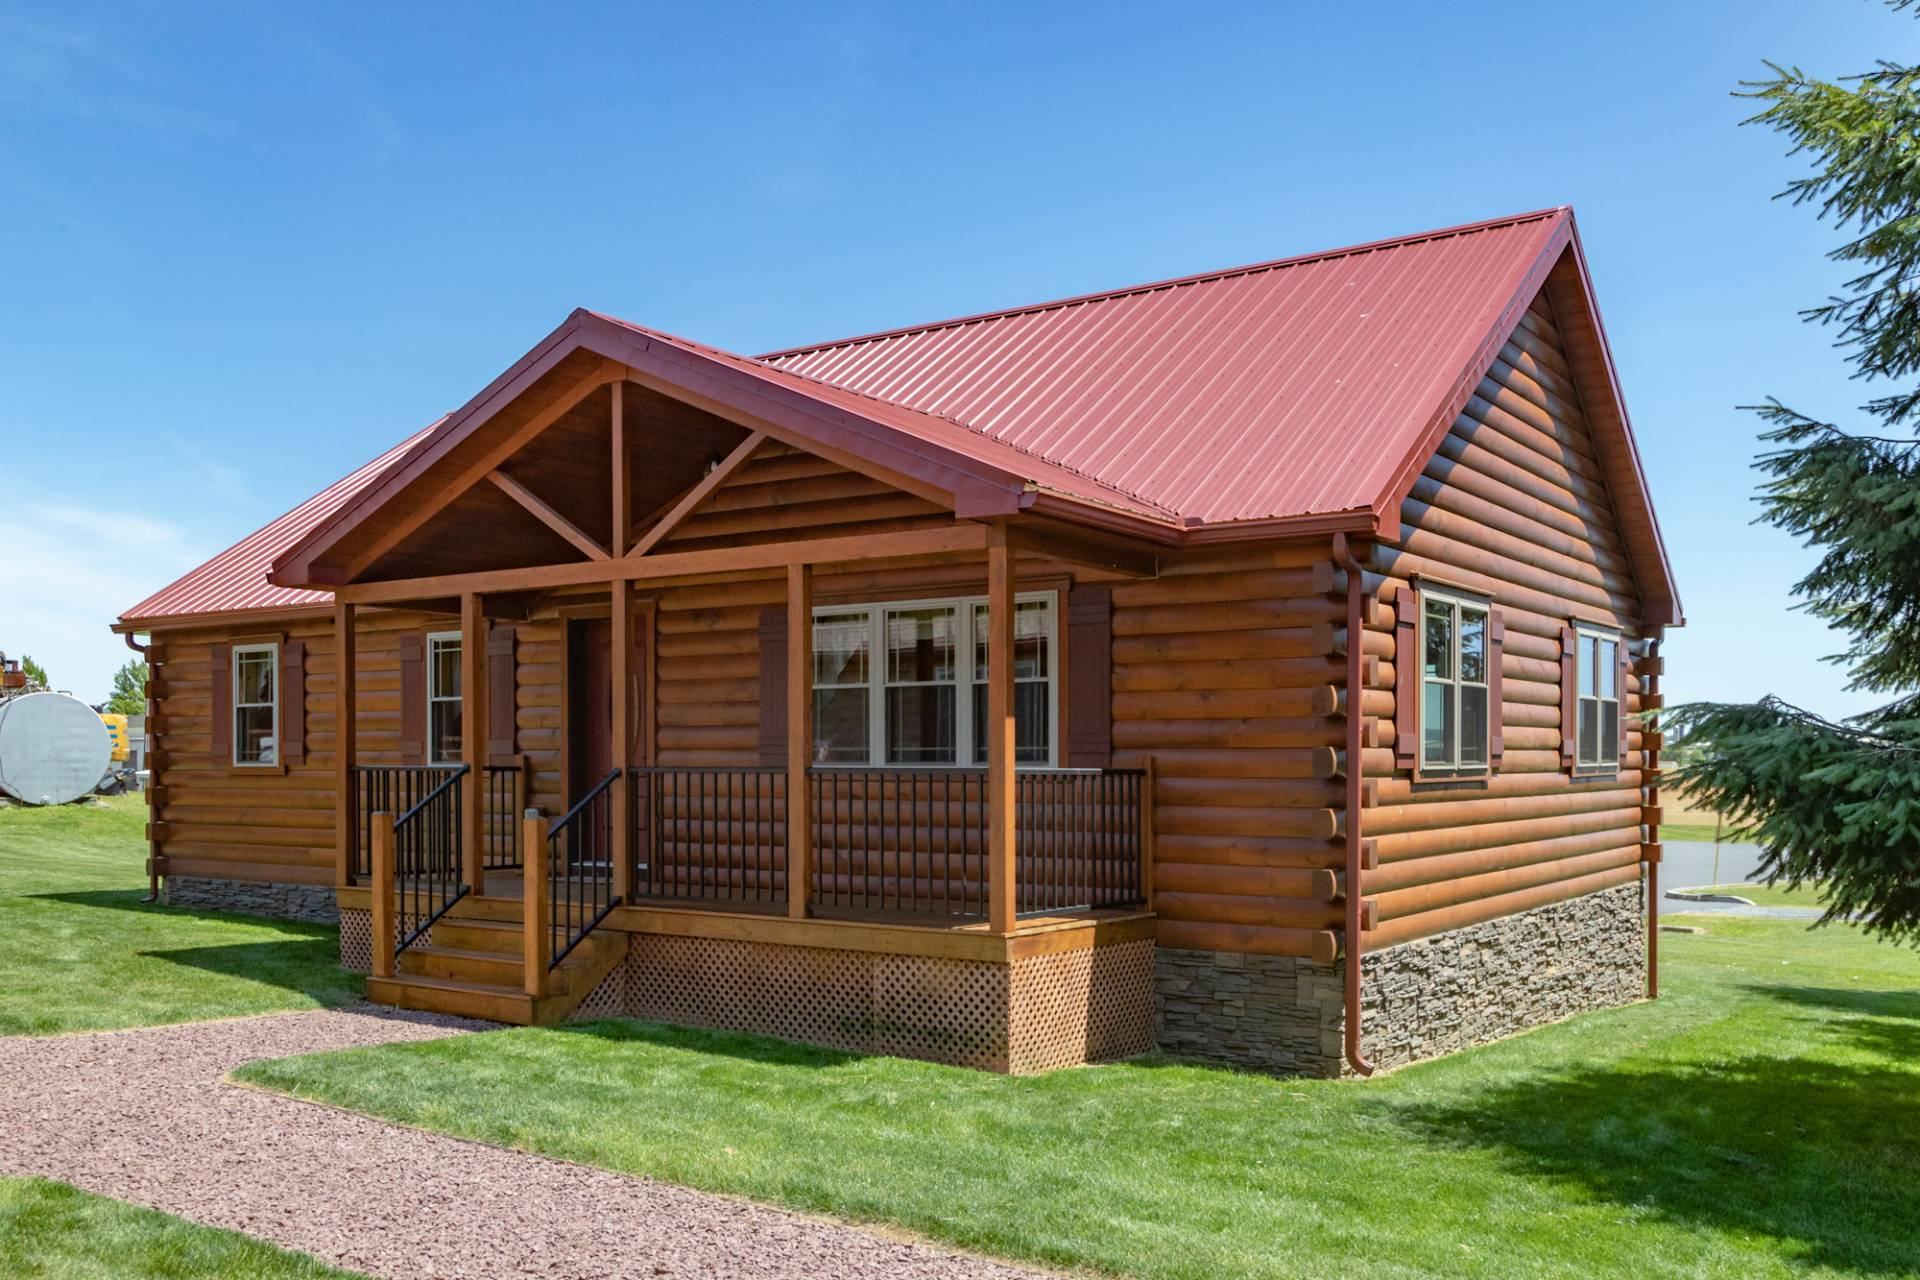 Pioneer Log Homes France tour our log cabin & modular home models | cozy cabins